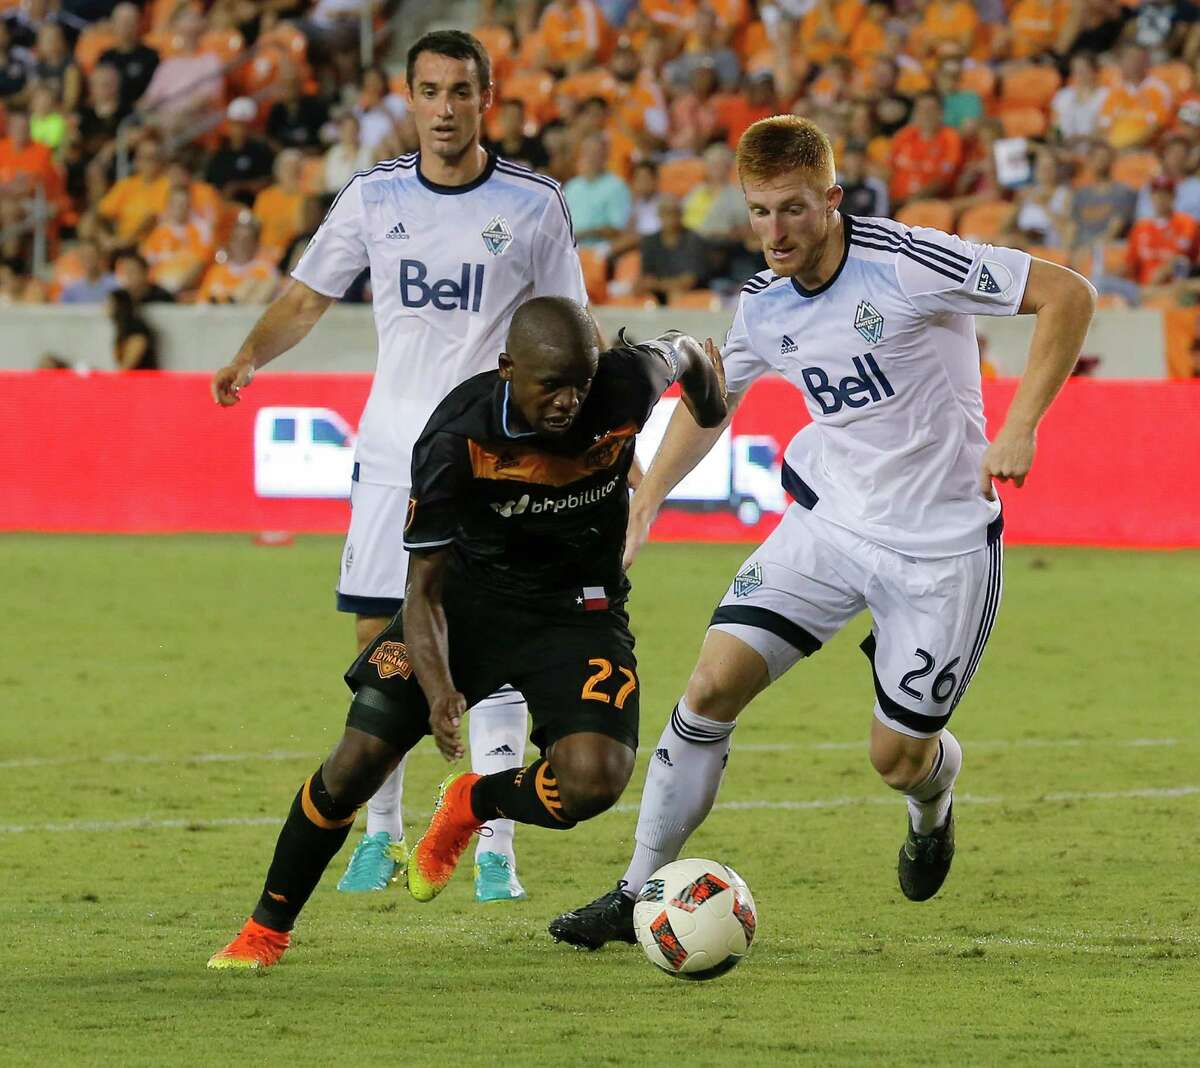 Houston Dynamo midfielder Oscar Garcia (27) dribbles around Vancouver Whitecaps defender Tim Parker (26) during the second half during an MLS soccer match Saturday, July 23, 2016, in Houston. Houston and Vancouver played to scoreless draw. (AP Photo/Bob Levey)